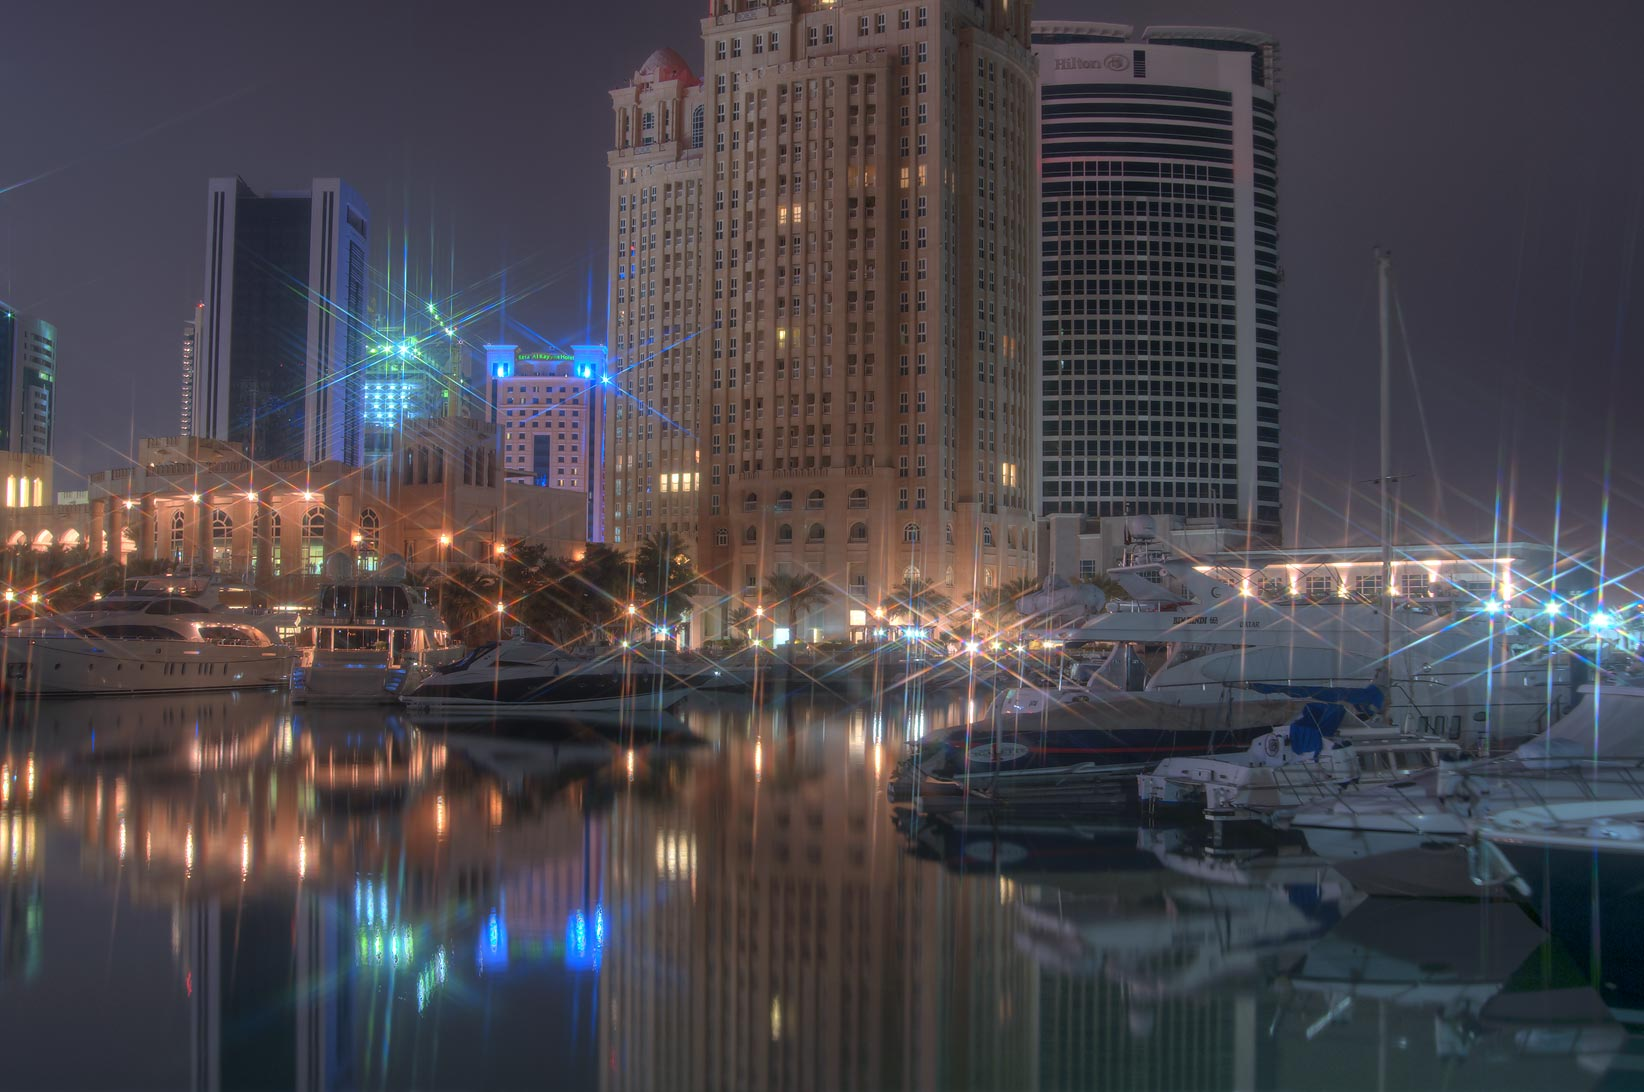 Vessels in marina of Four Seasons Hotel at morning. Doha, Qatar